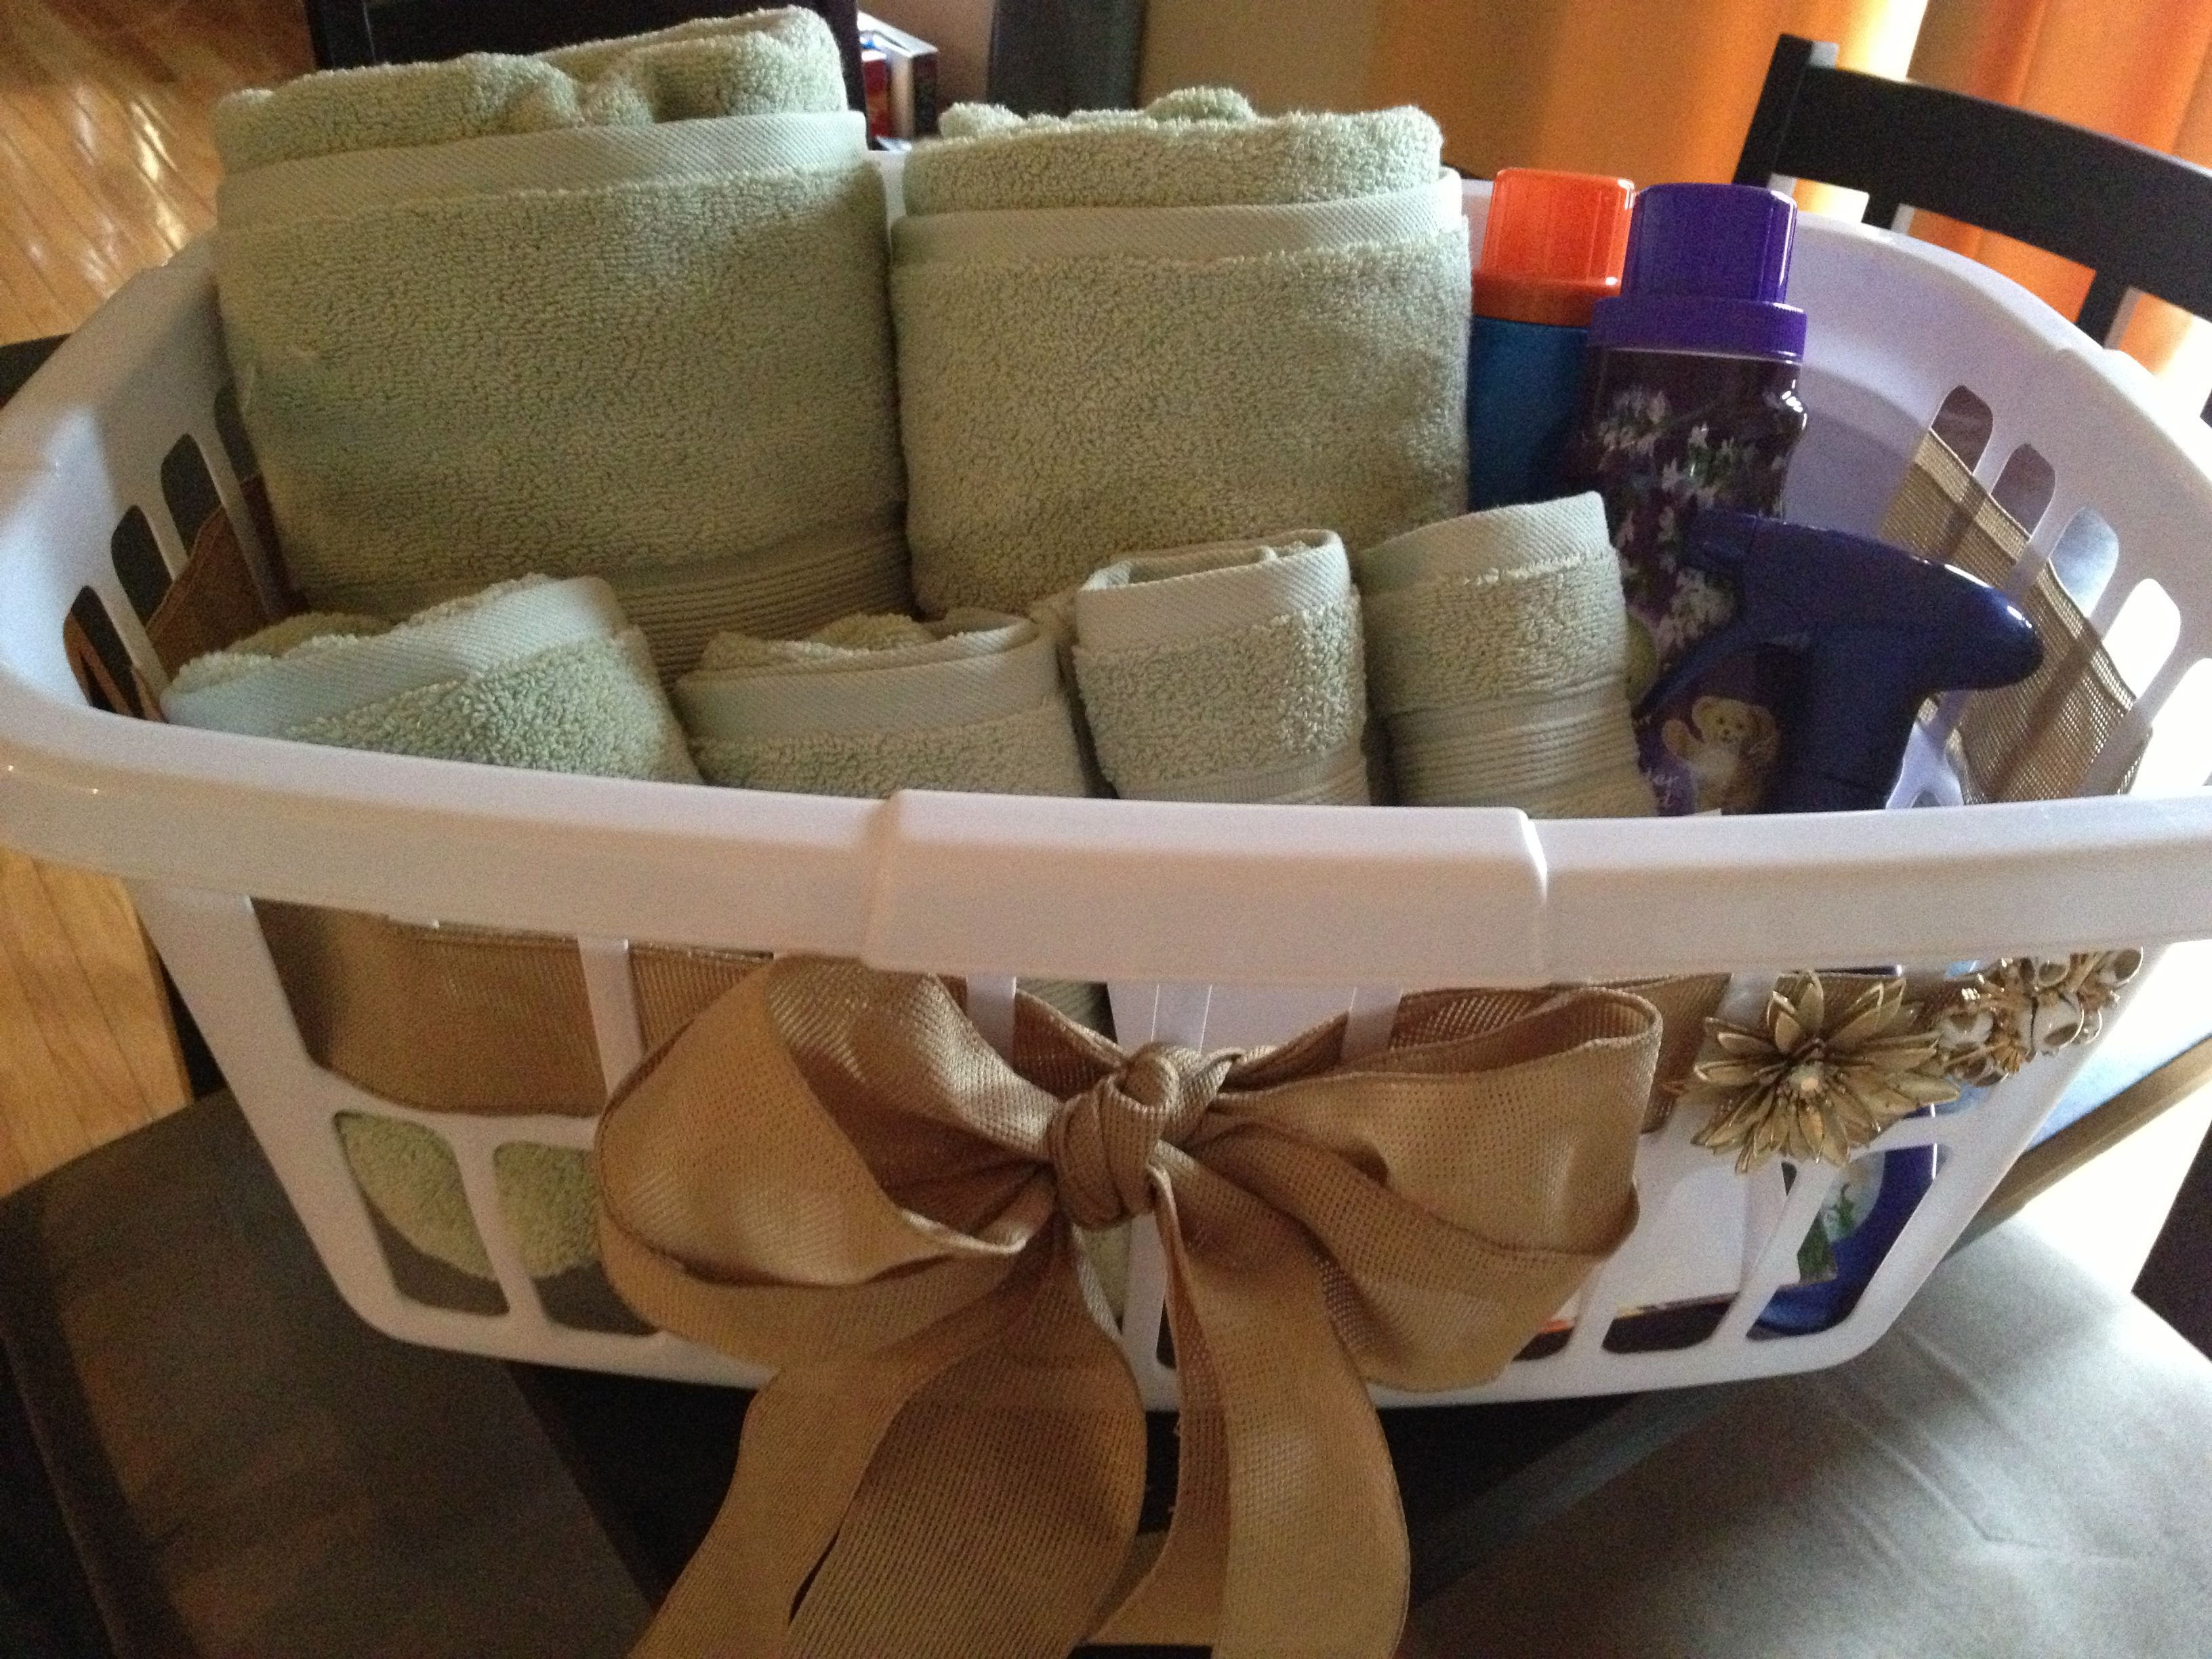 Wedding Gift Towels: Laundry Basket Filled With Towels